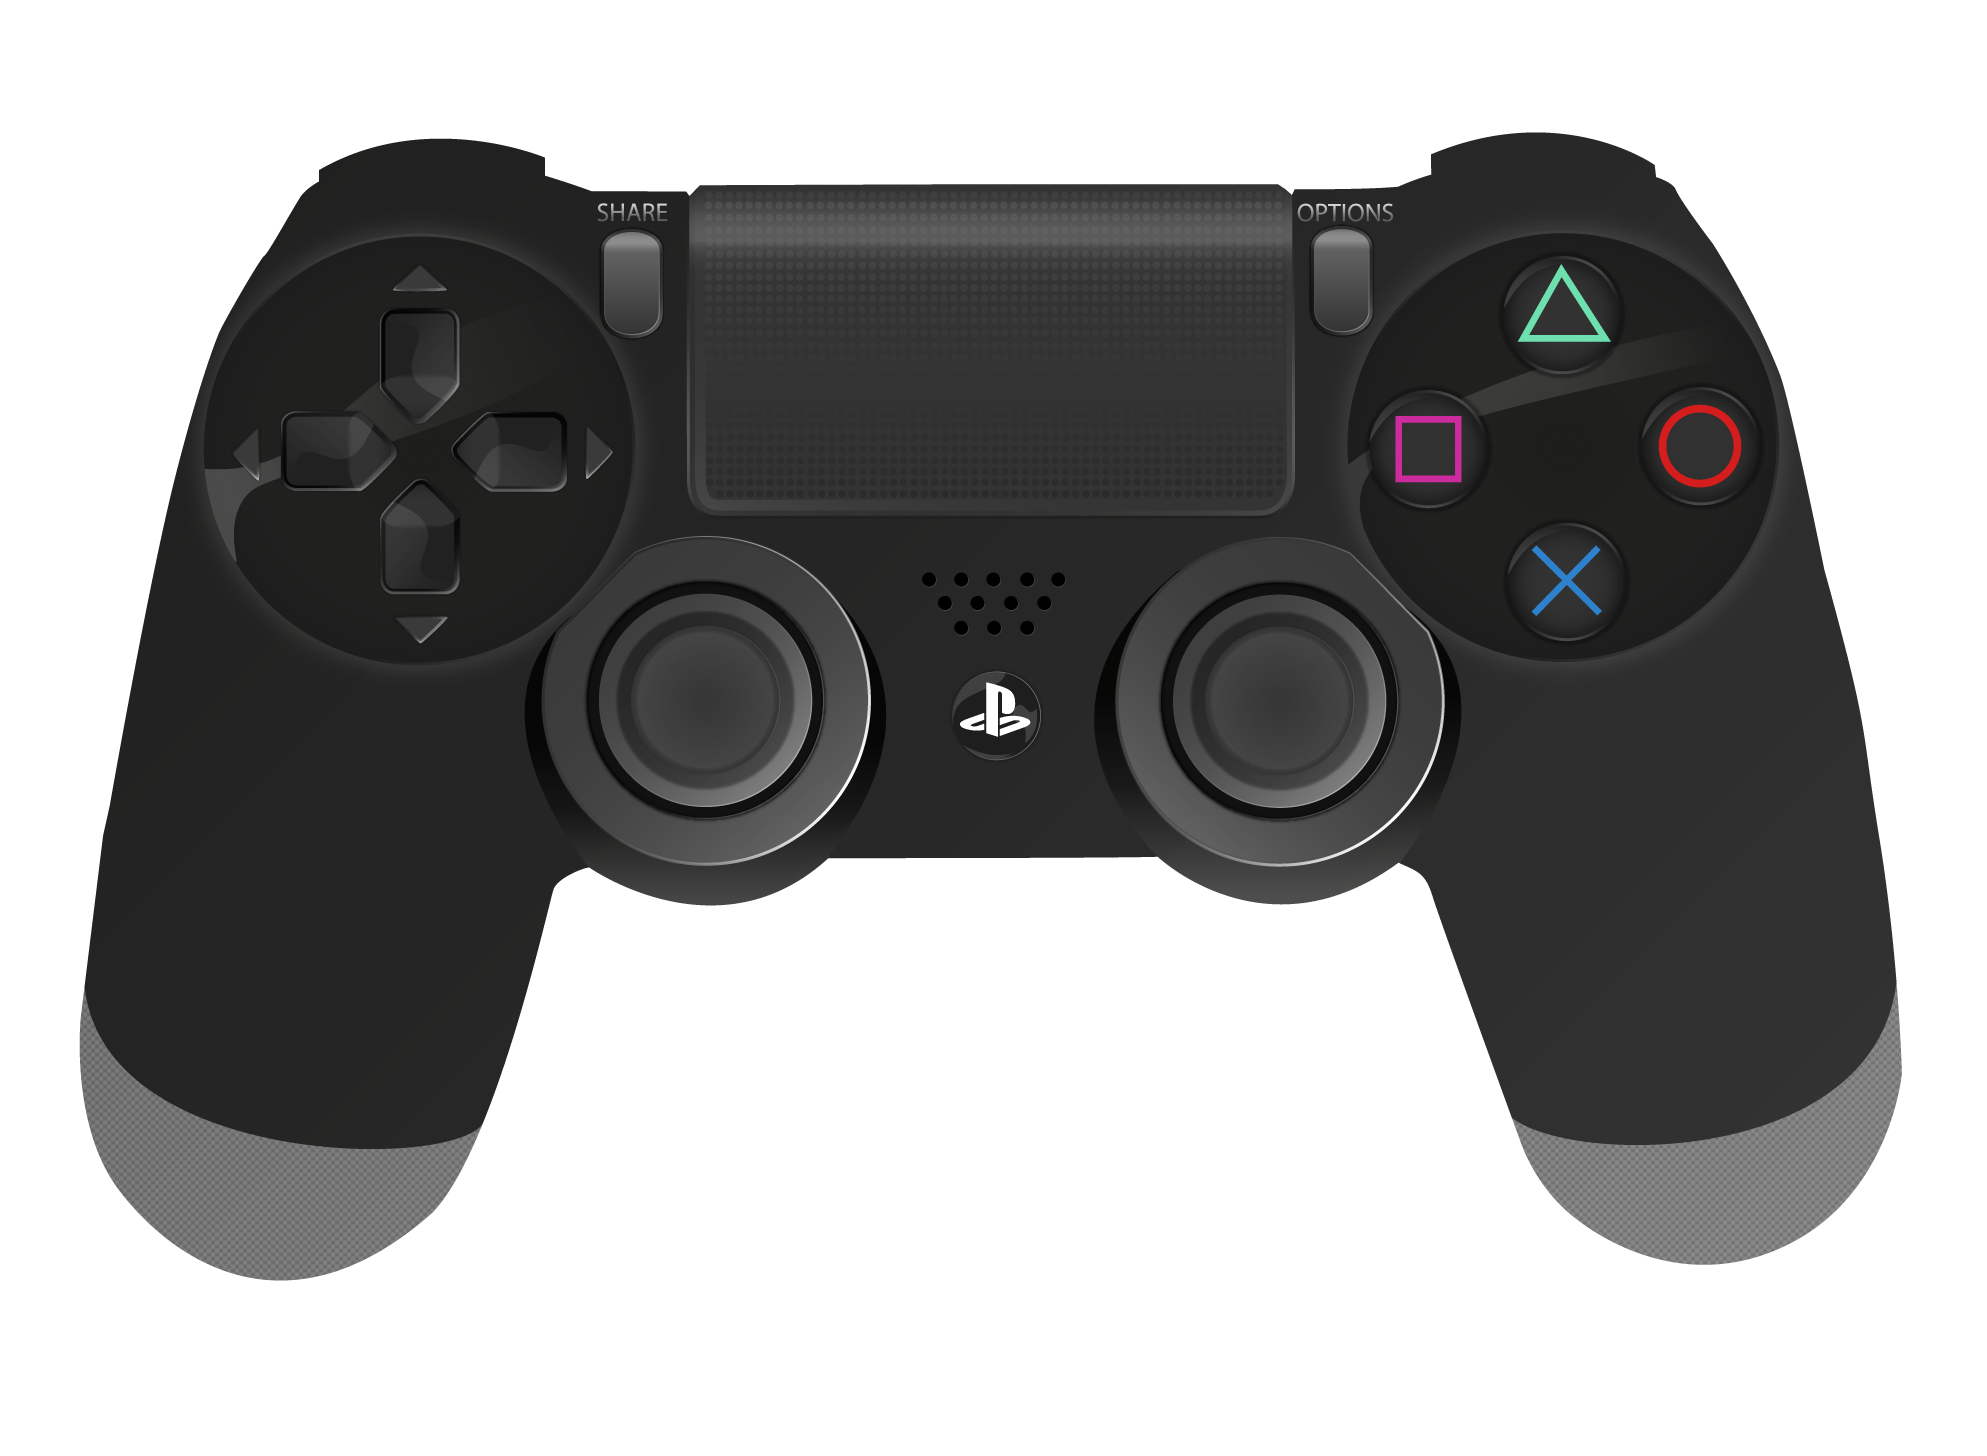 Dualshock explore on deviantart. Gaming clipart playstation 4 controller